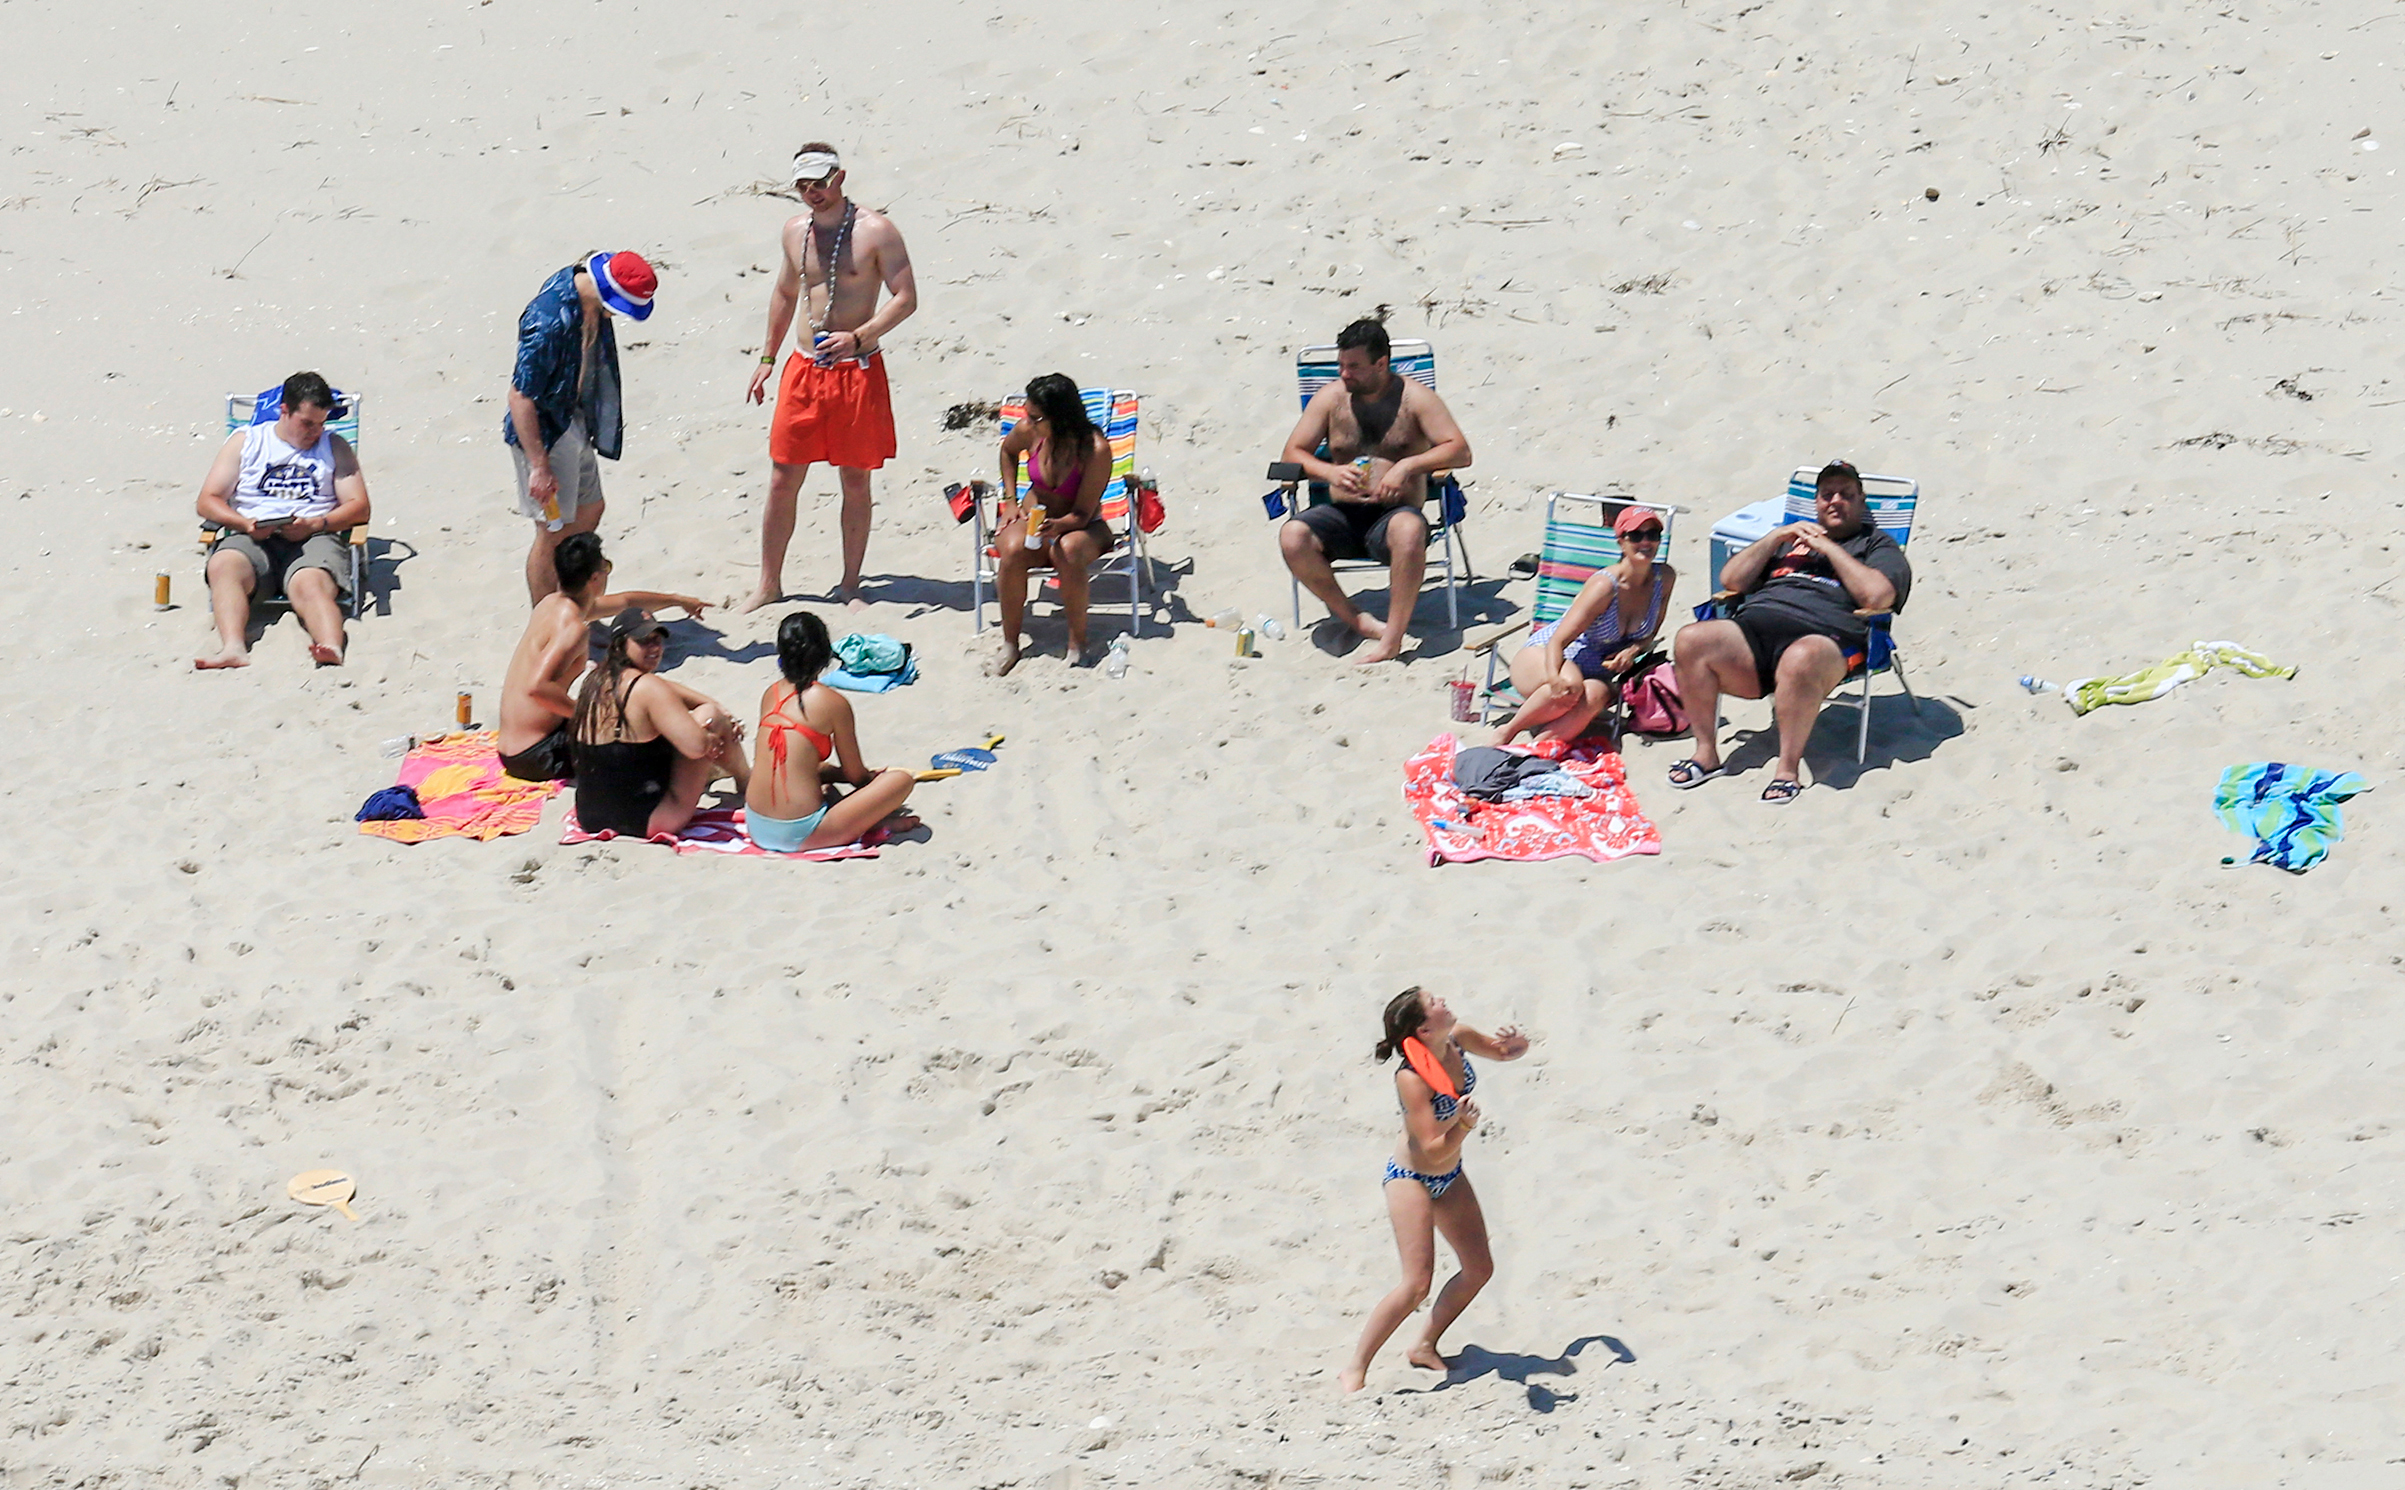 New Jersey Gov. Chris Christie, right, uses the beach with his family and friends at the governor's summer house at Island Beach State Park in New Jersey on July 2, 2017.